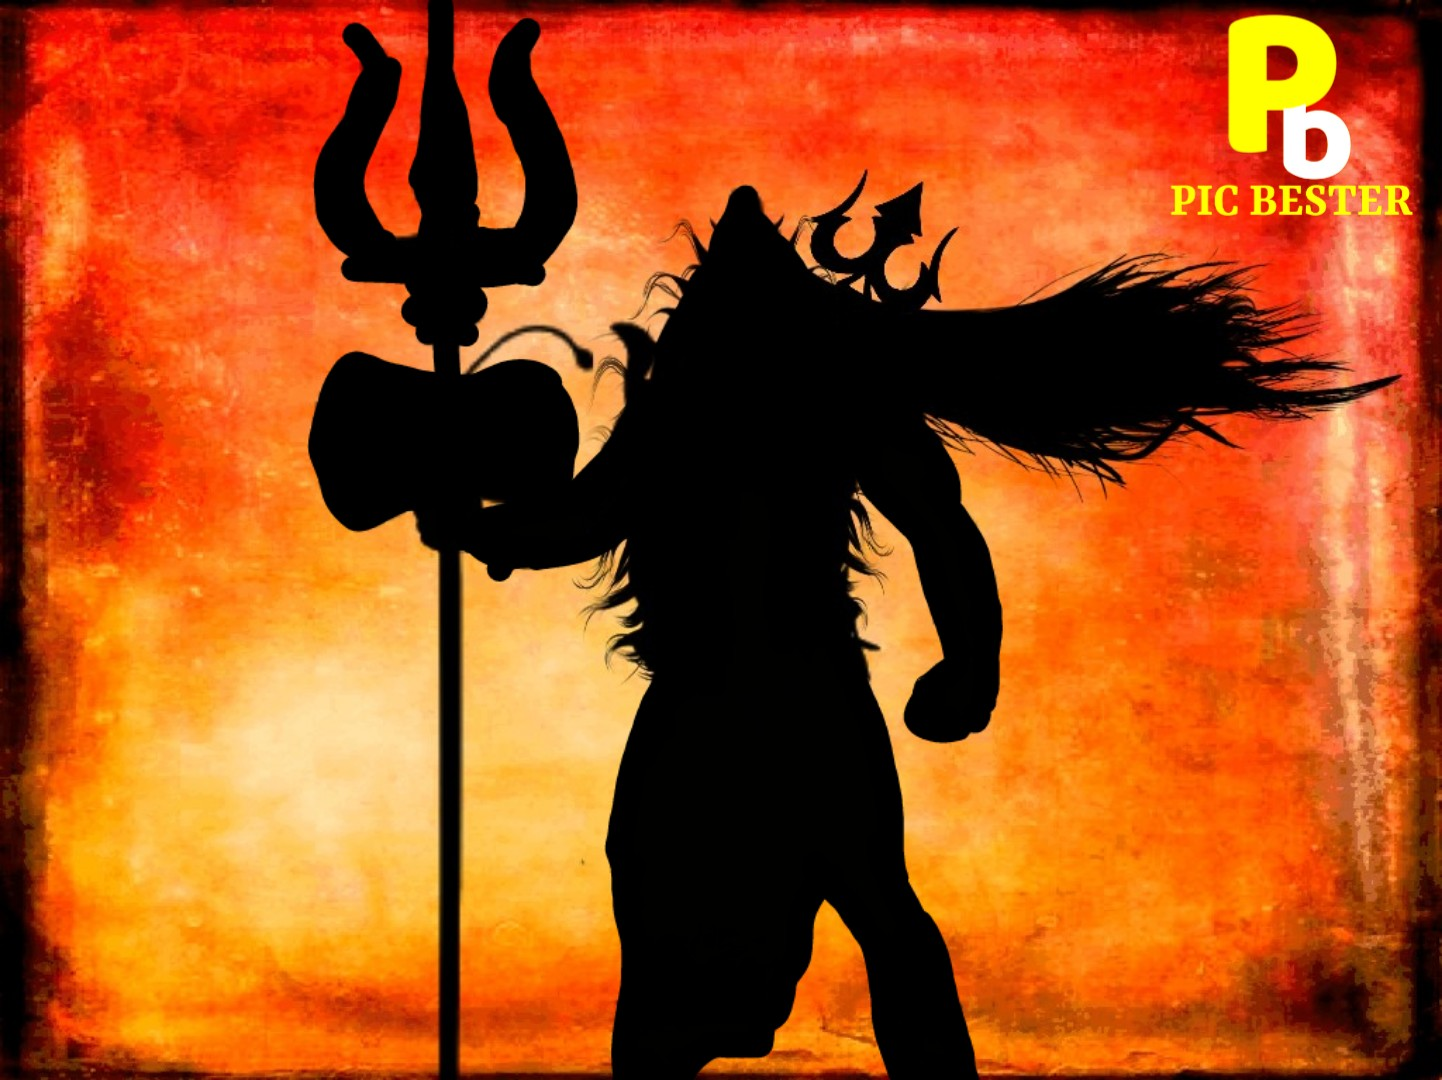 Top 15 Mahadev Photos With Full Hd Quality Pic Bester